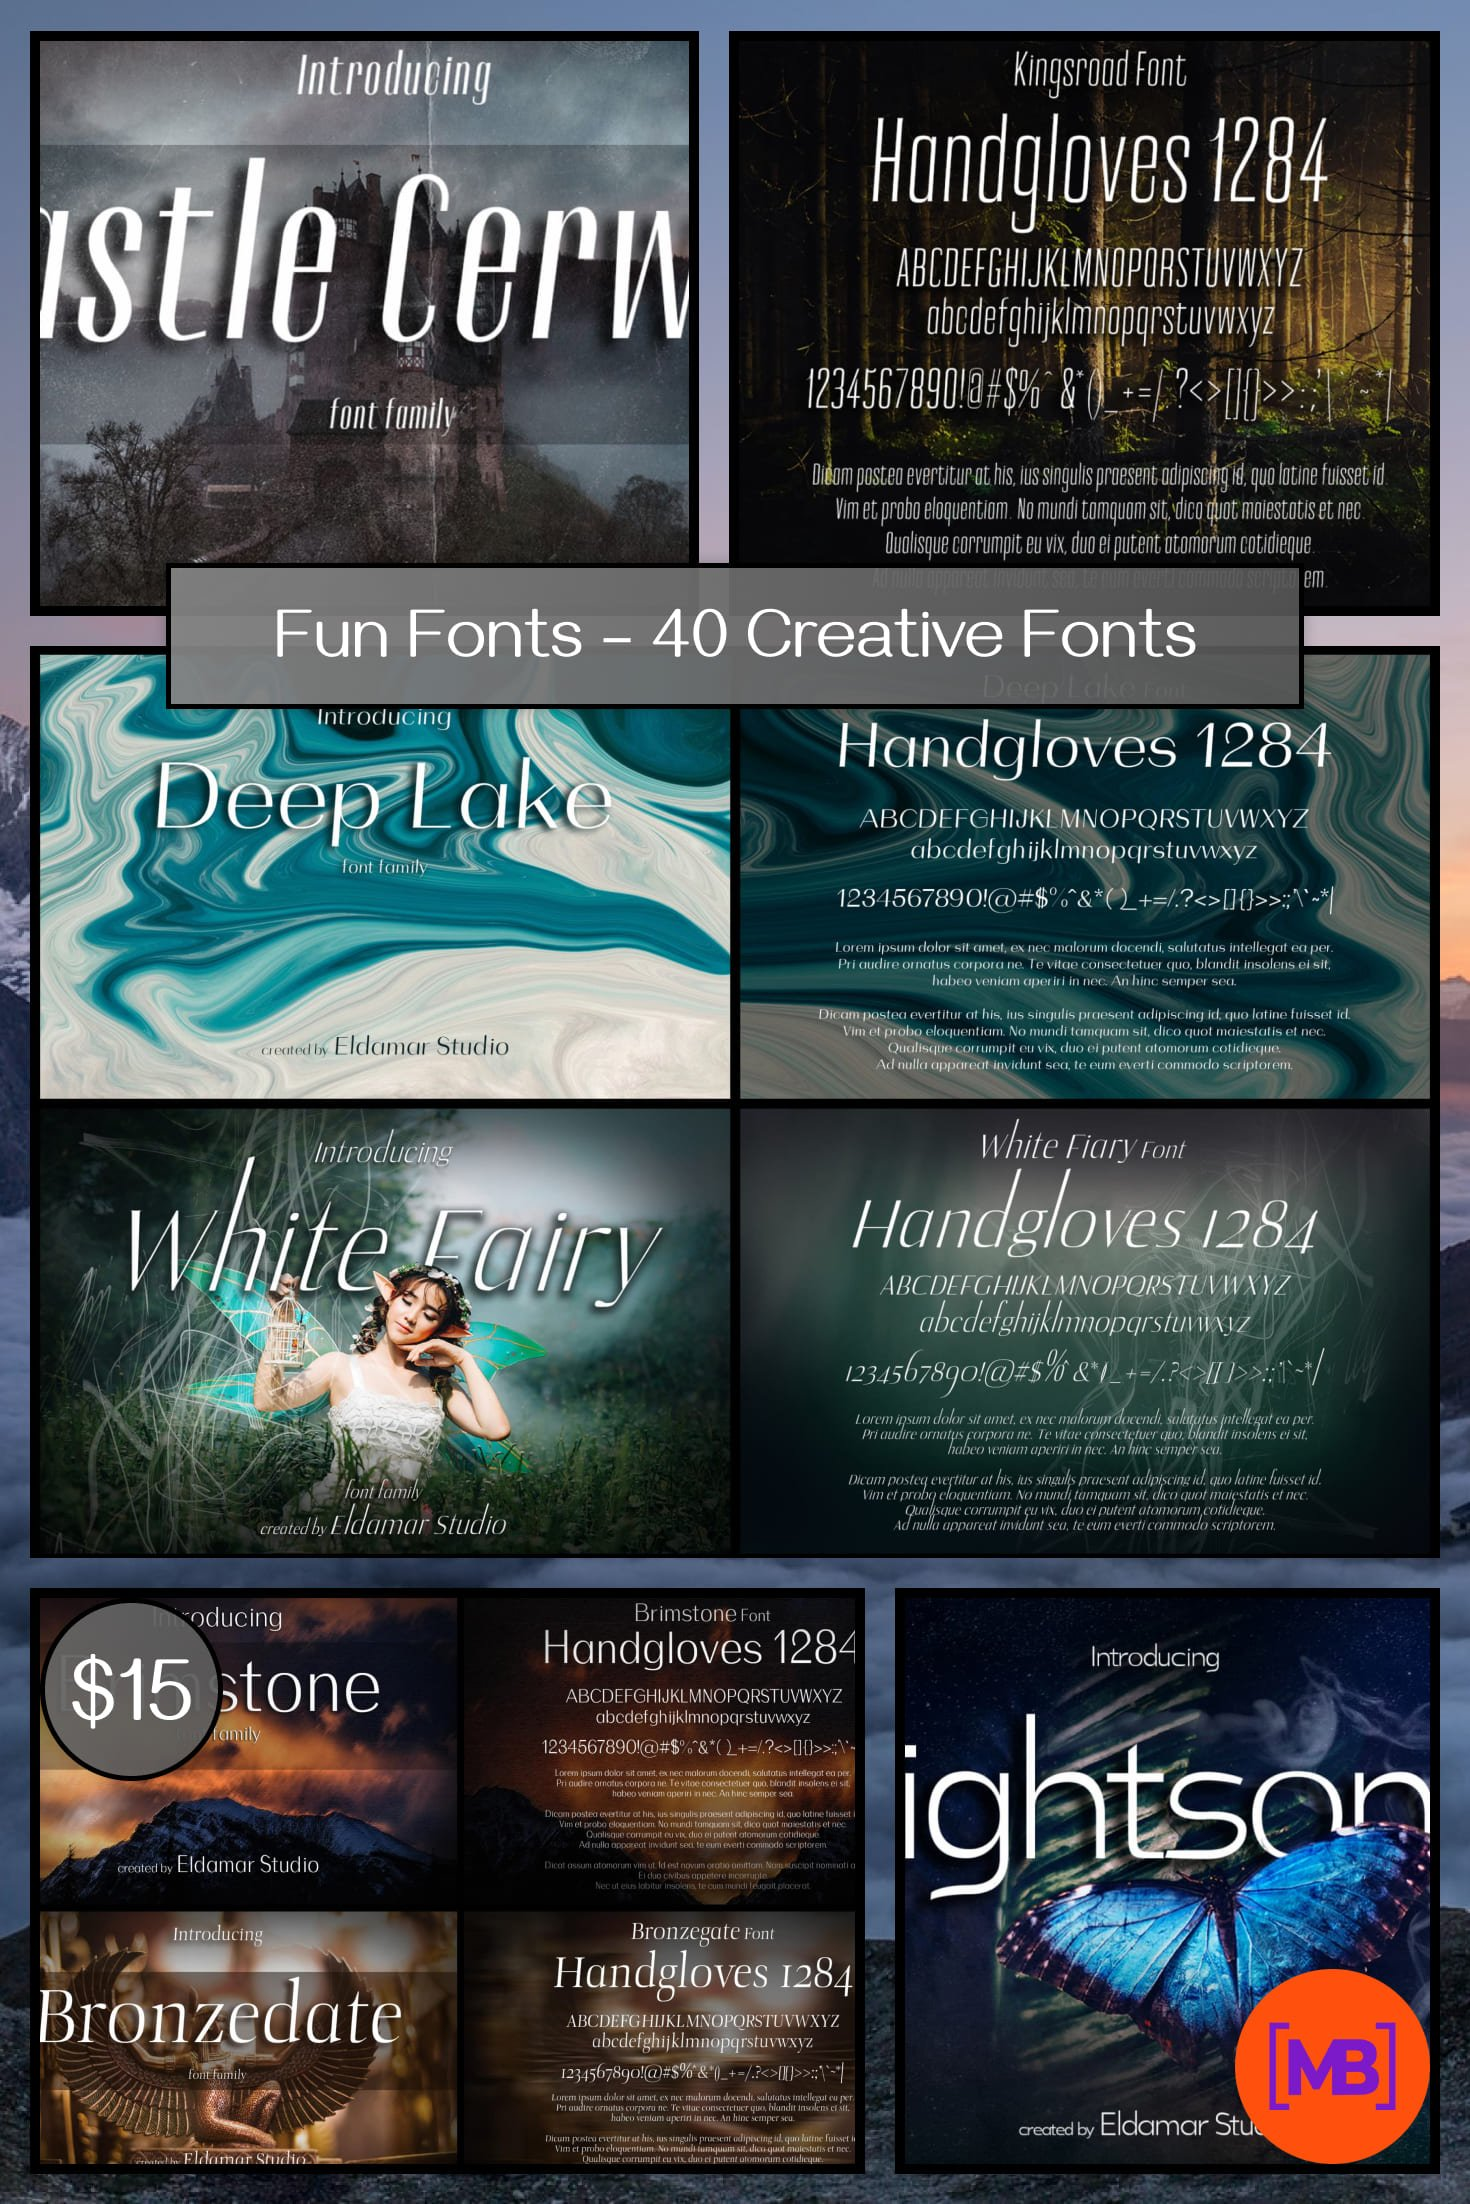 Fun Fonts - 40 Creative Fonts - 160 Files - Just $15. Collage Image.